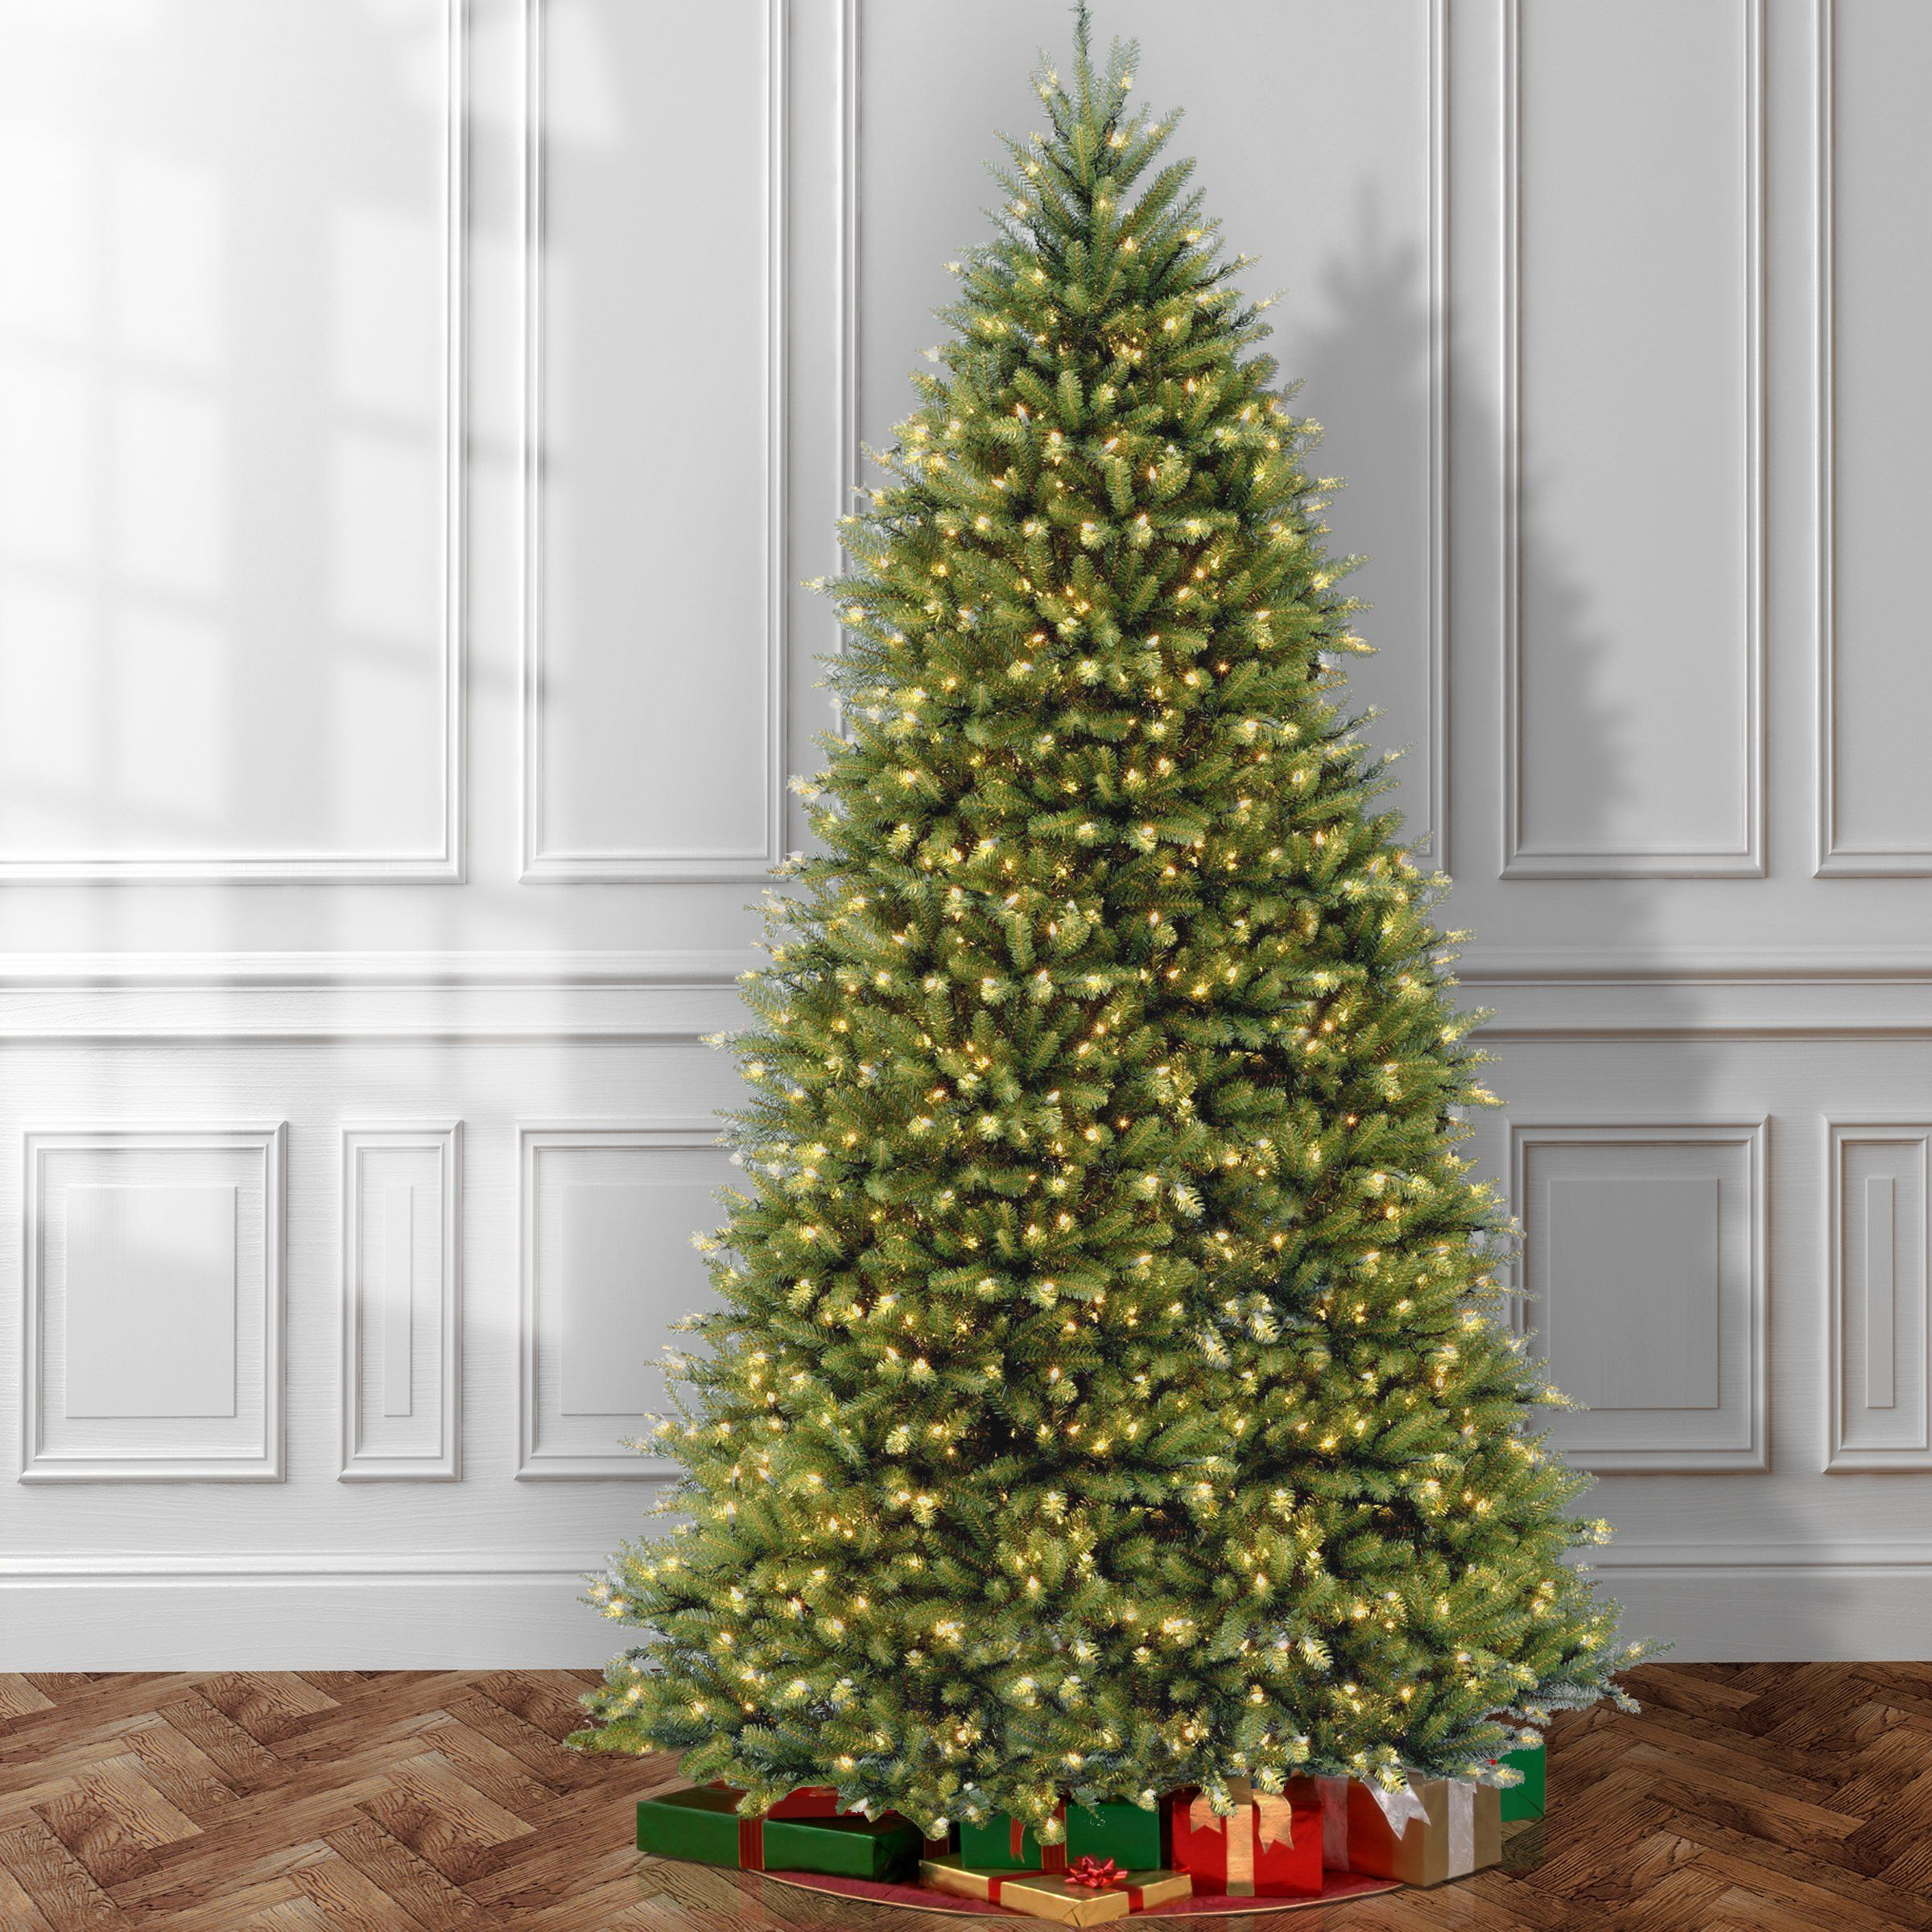 National Tree 12 Foot Dunhill Fir Tree With 1500 Clear Lights Hinged Duh120los Detail Pre Lit Christmas Tree Best Artificial Christmas Trees Christmas Tree